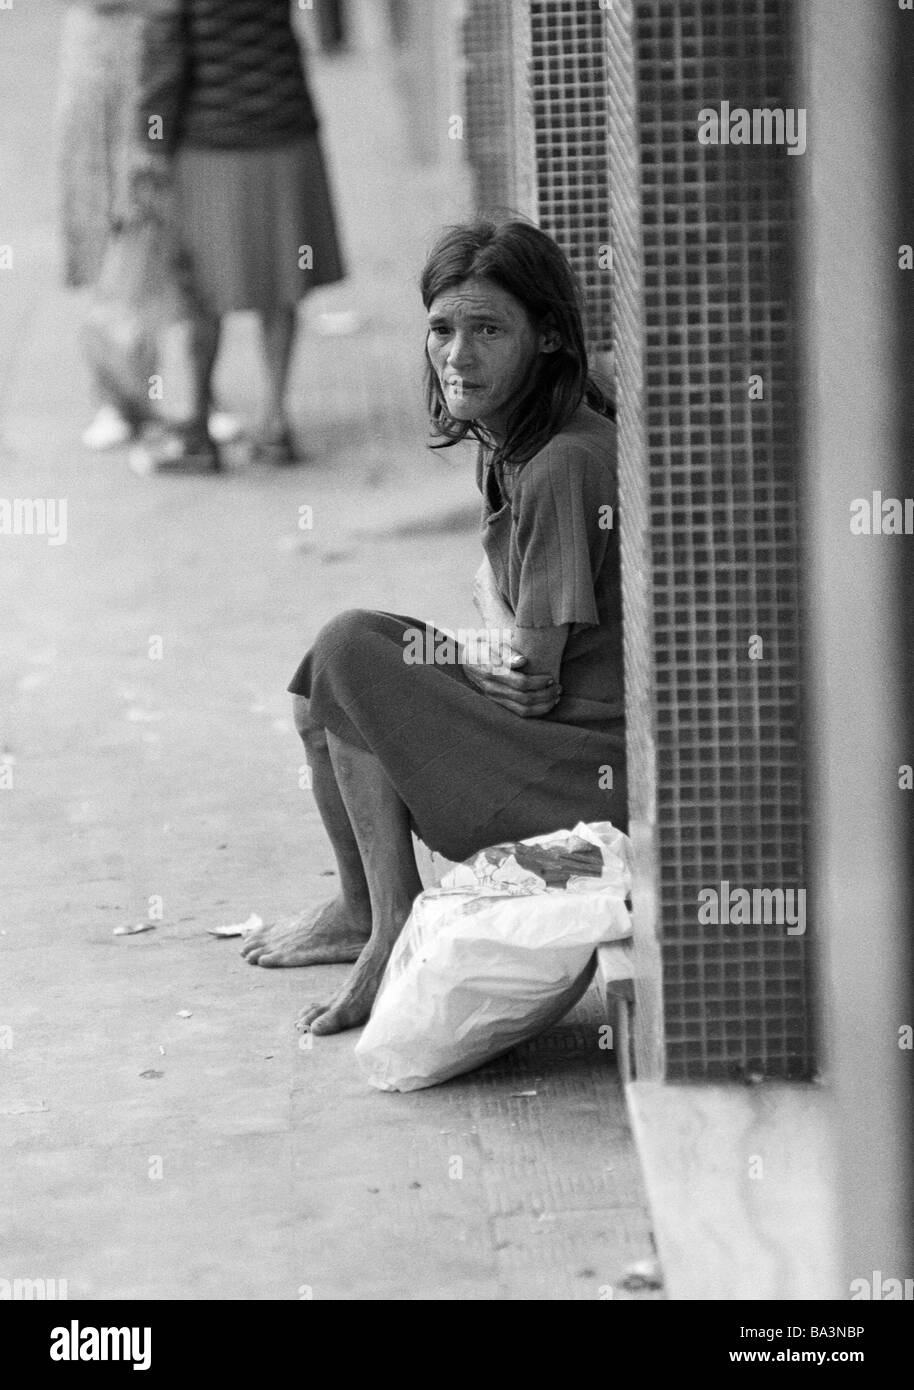 Seventies, black and white photo, people, poorness, beggar-woman sits at the roadside, aged 40 to 60 years, Brazil, - Stock Image